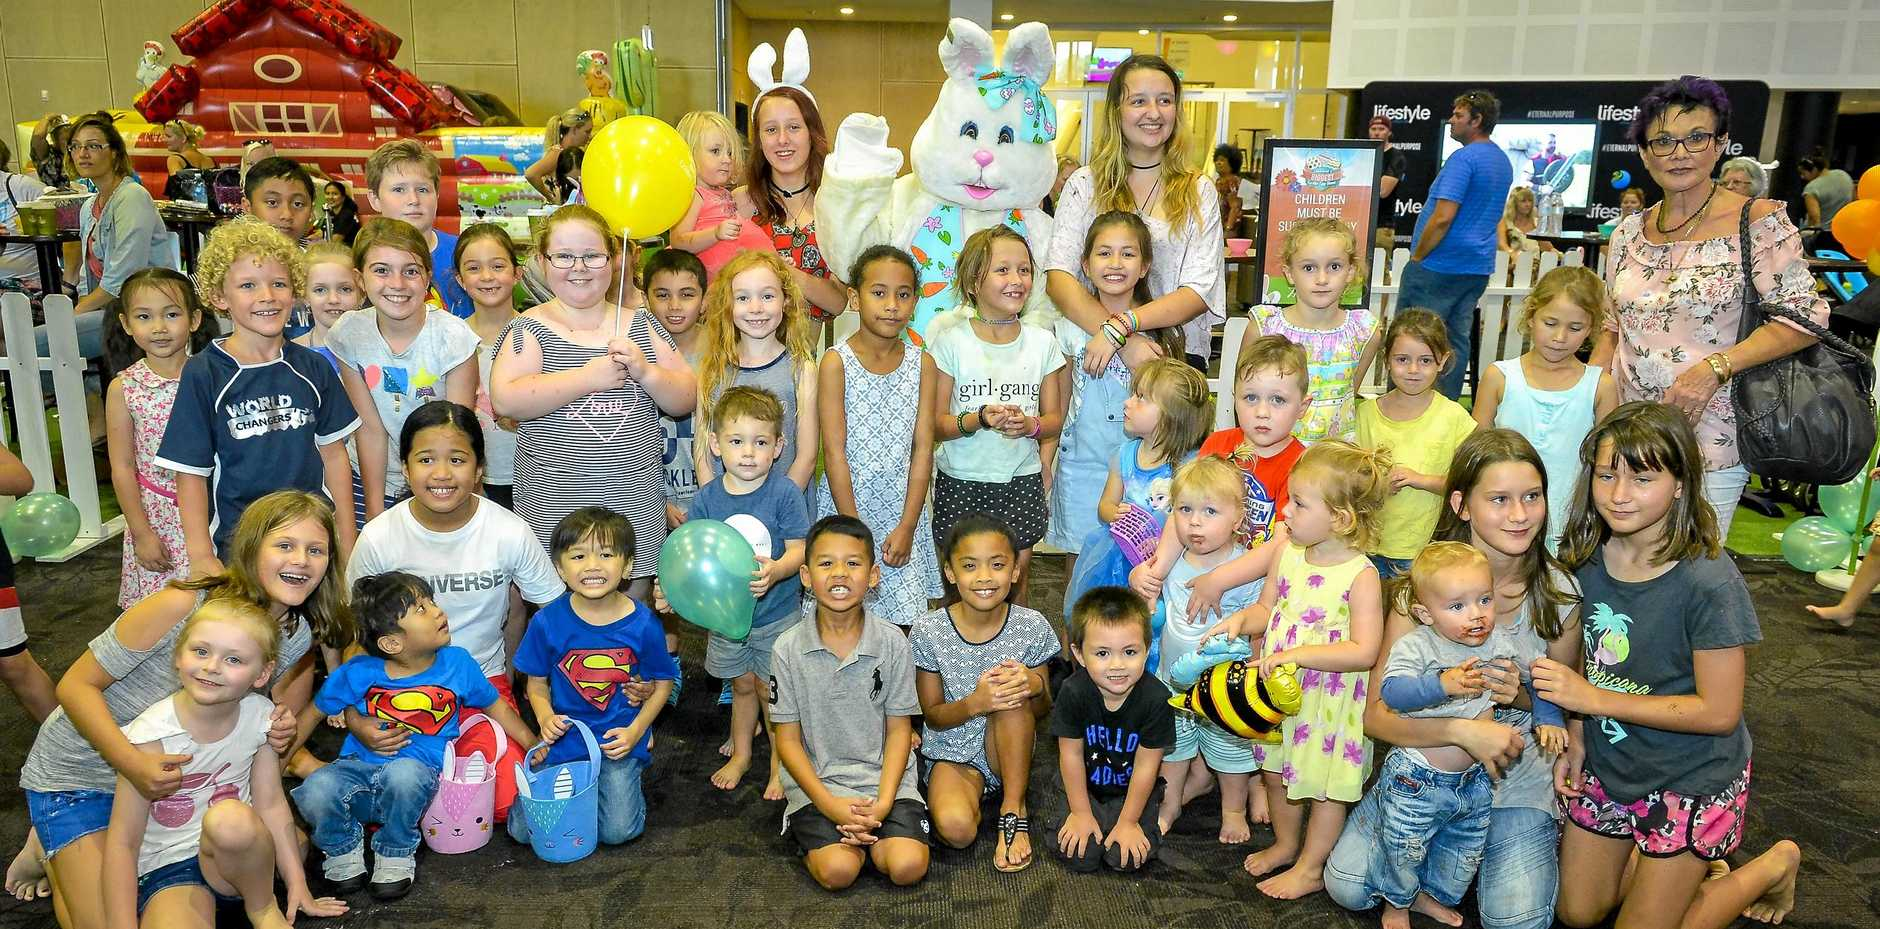 The Easter Bunny meets children at the Lifestyle Church Easter Egg hunt held at GECC on Easter Sunday, as part of Gladstone Harbour Festival.